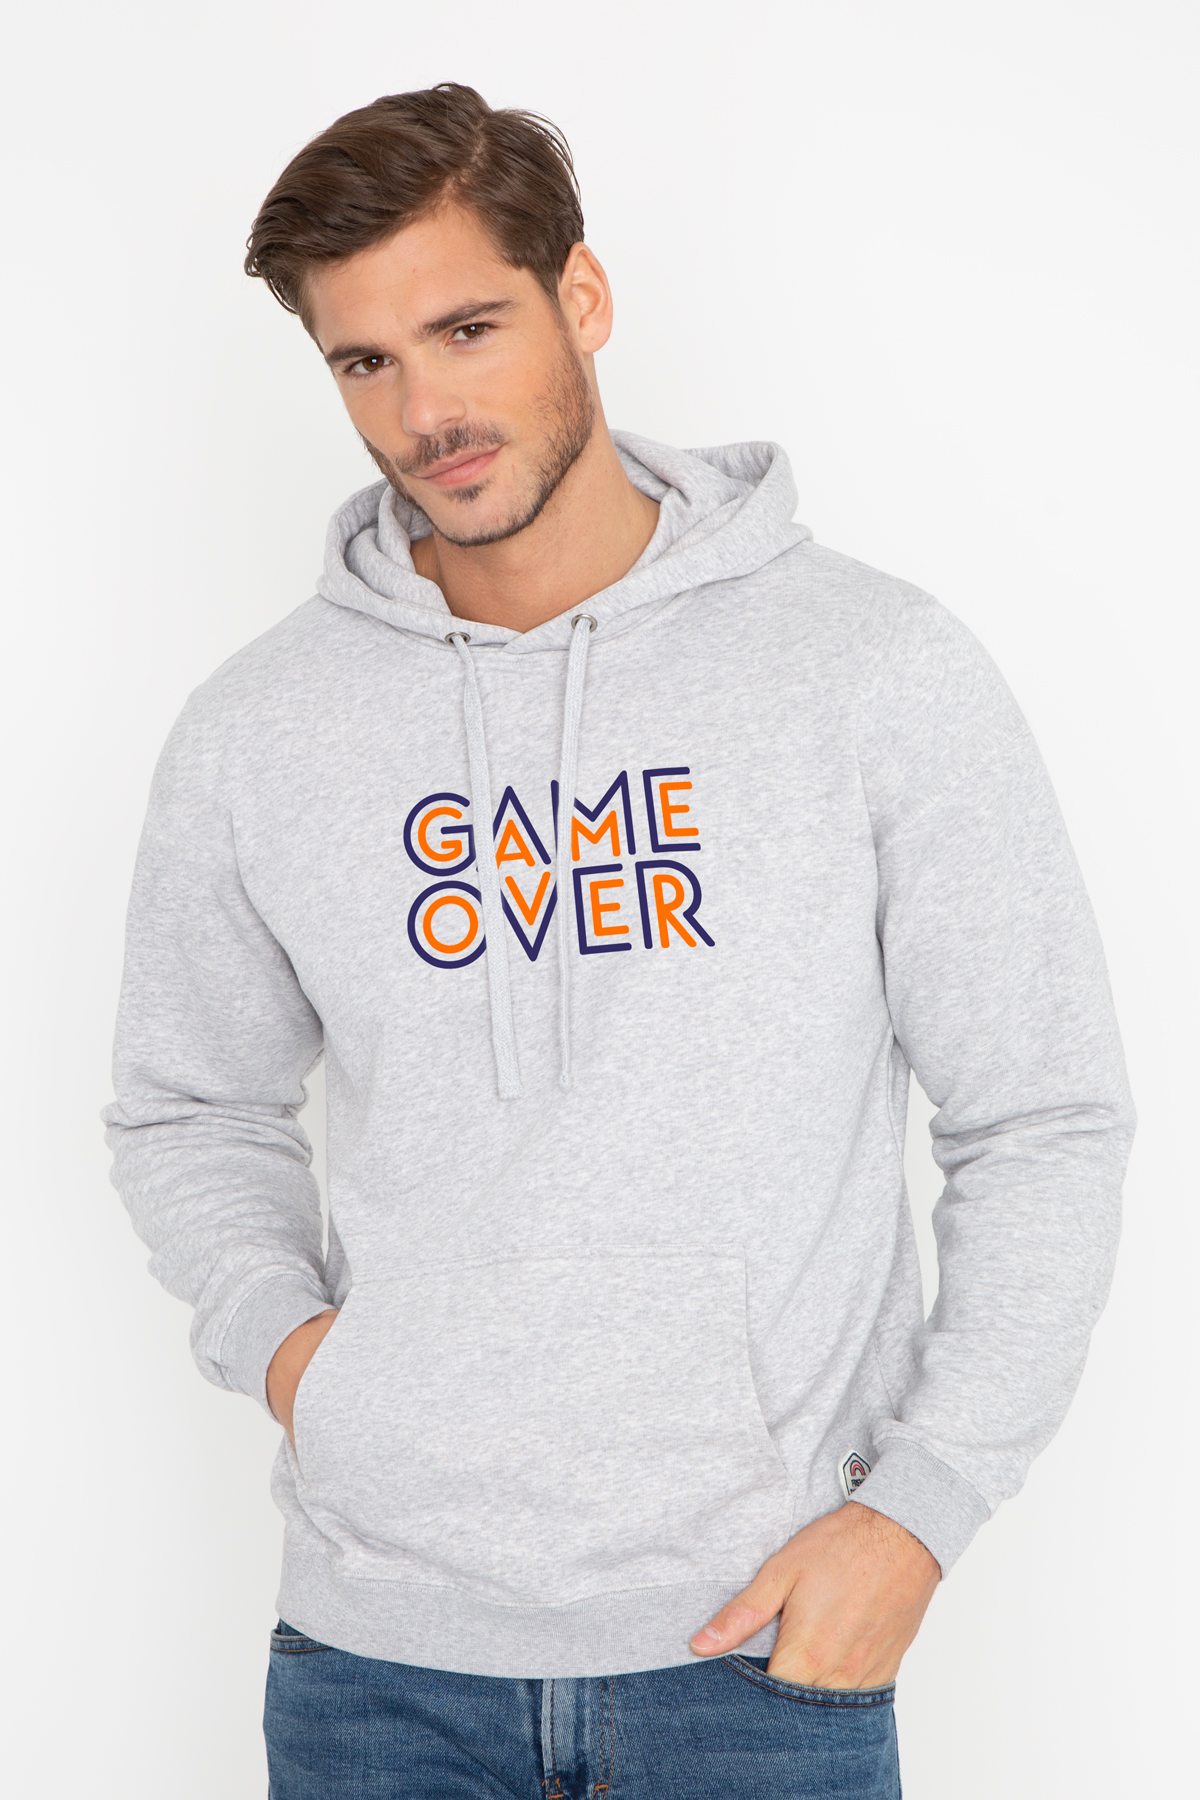 Hoodie GAME OVER French Disorder